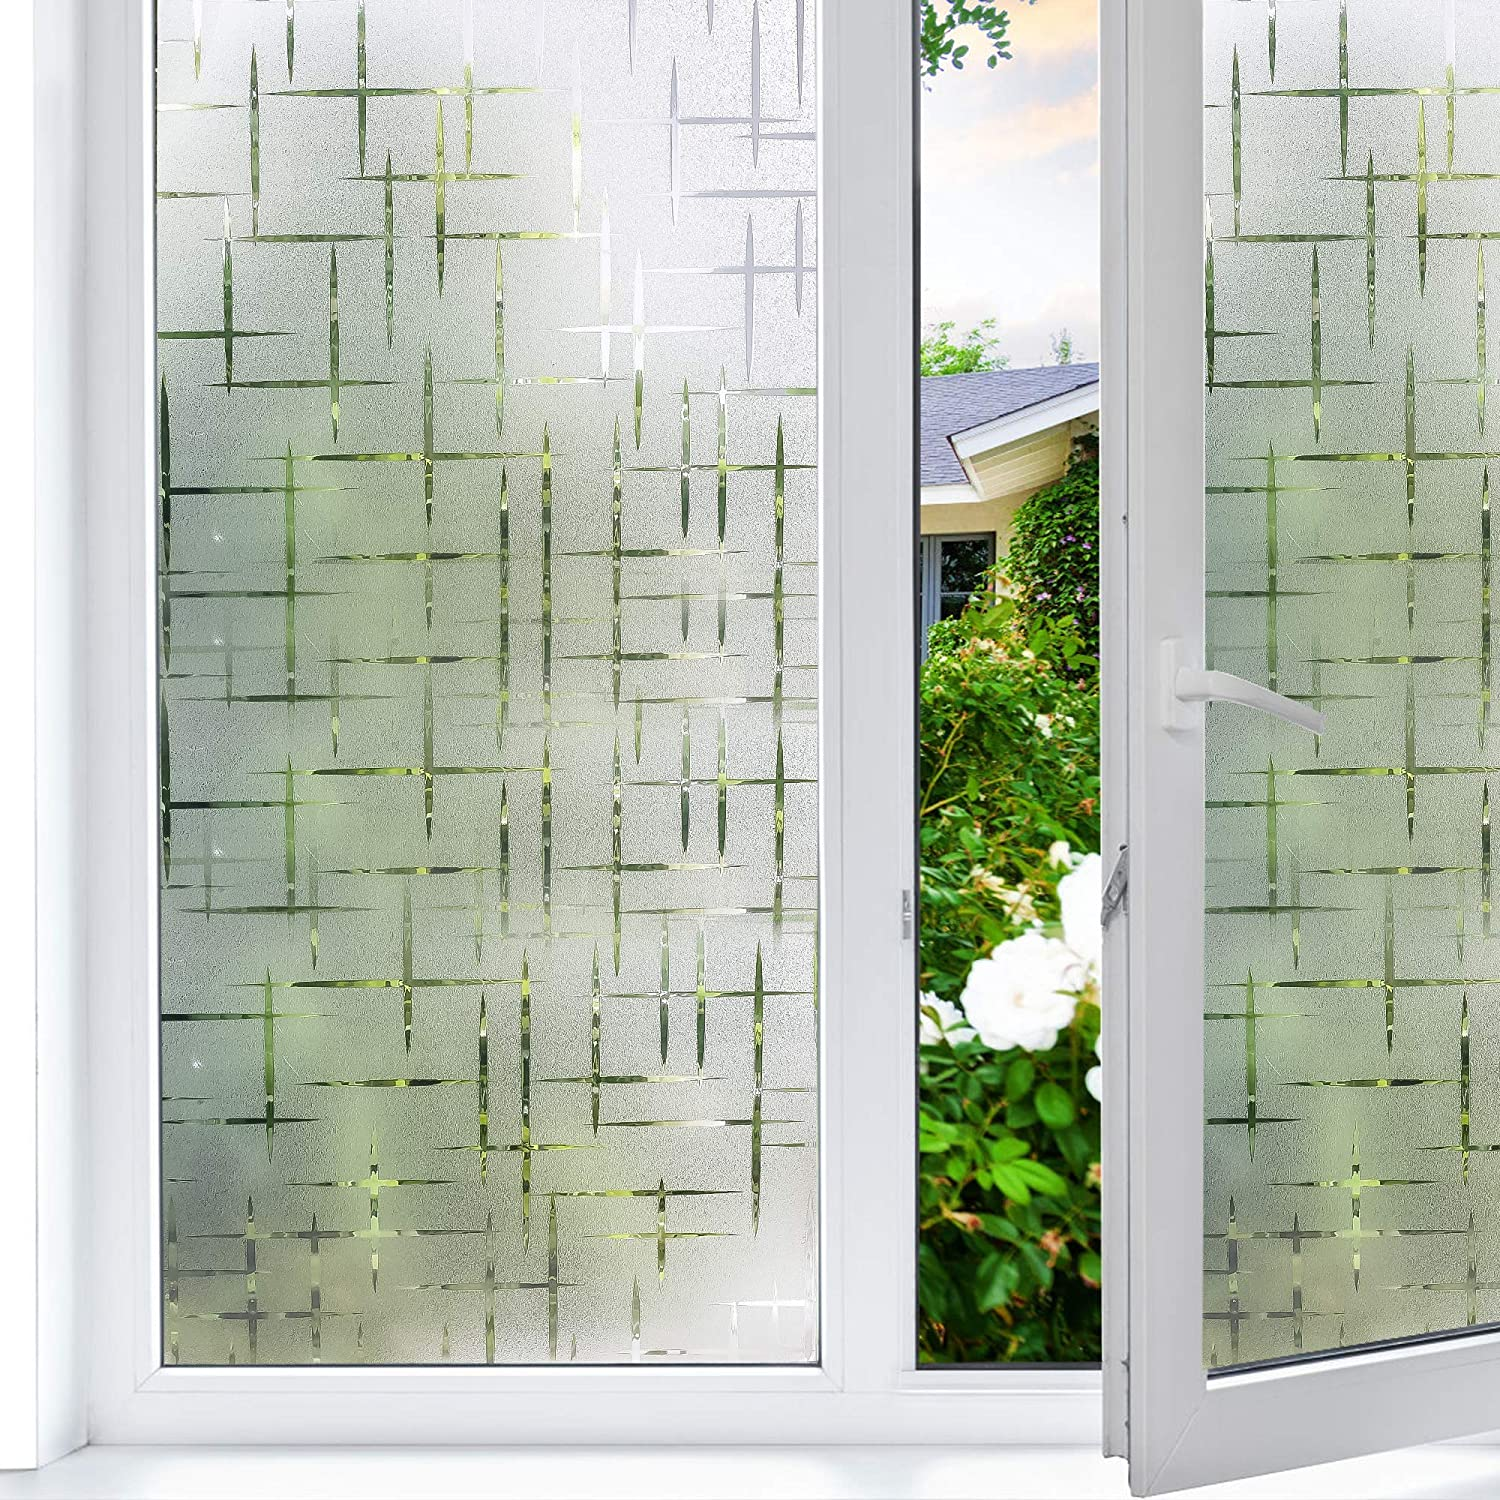 CHOIS EF1075 Custom Window Film DIY Strong Waves Surge Billow Custom Sizes Privacy Home Static Films Awesome Art Photo Decals Stickers